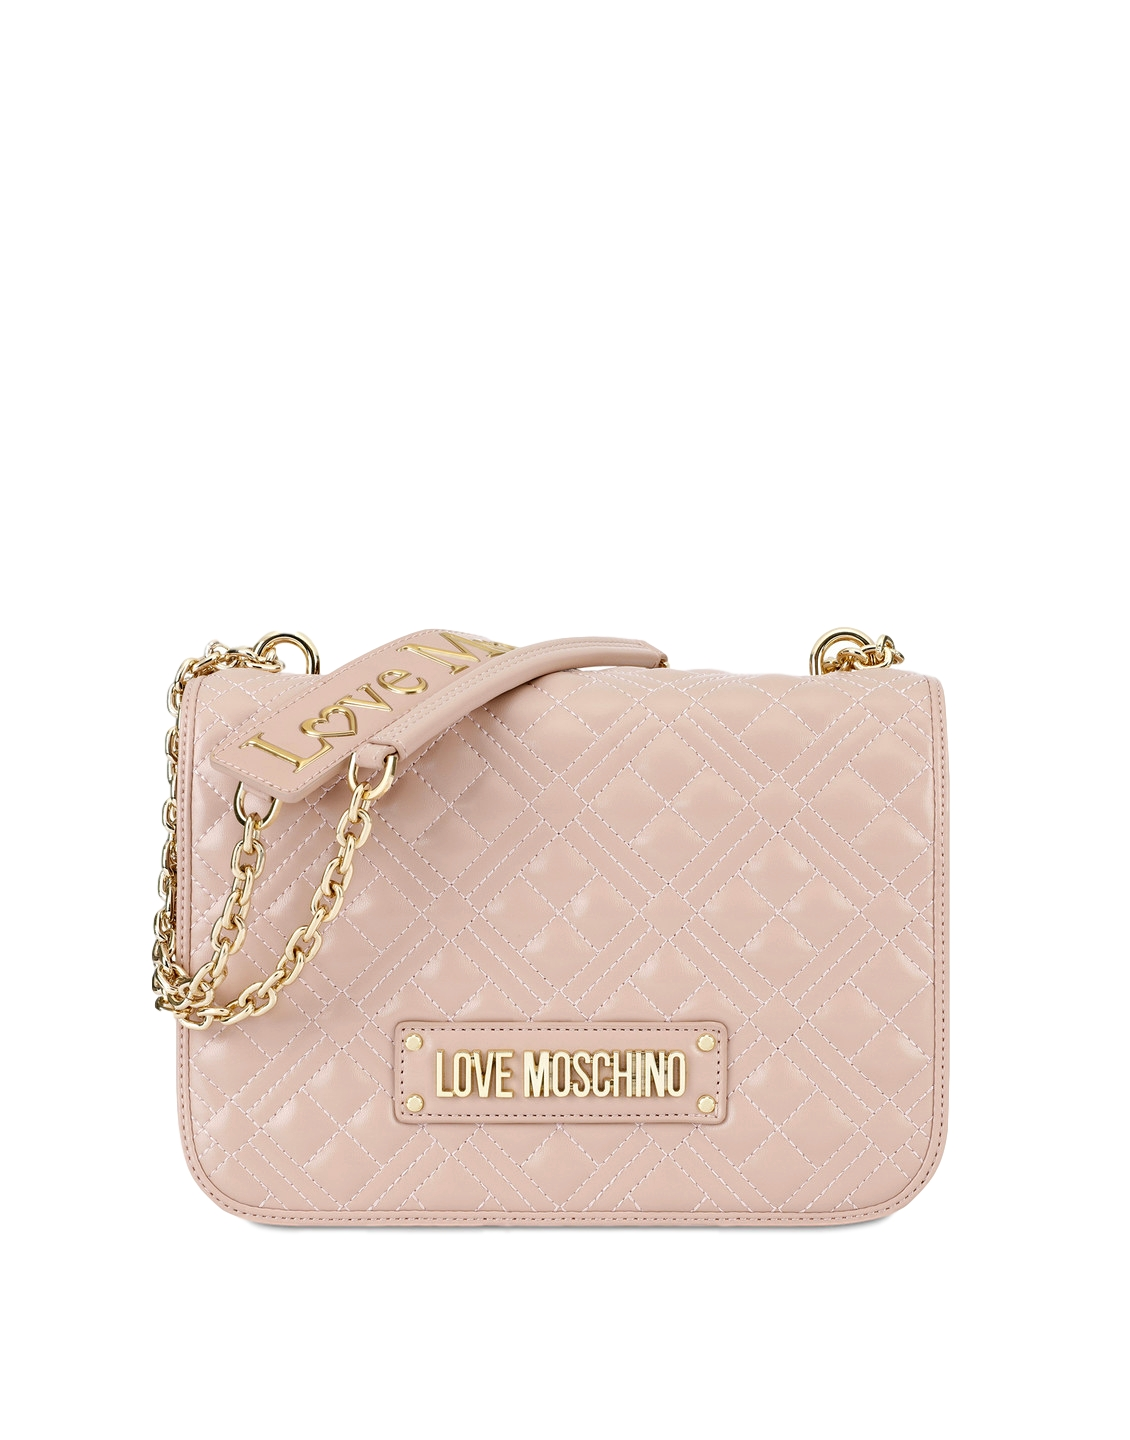 LOVE MOSCHINO P/E20 BORSA QUILTED NAPPA PU ROSA JC4000PP1ALA0600